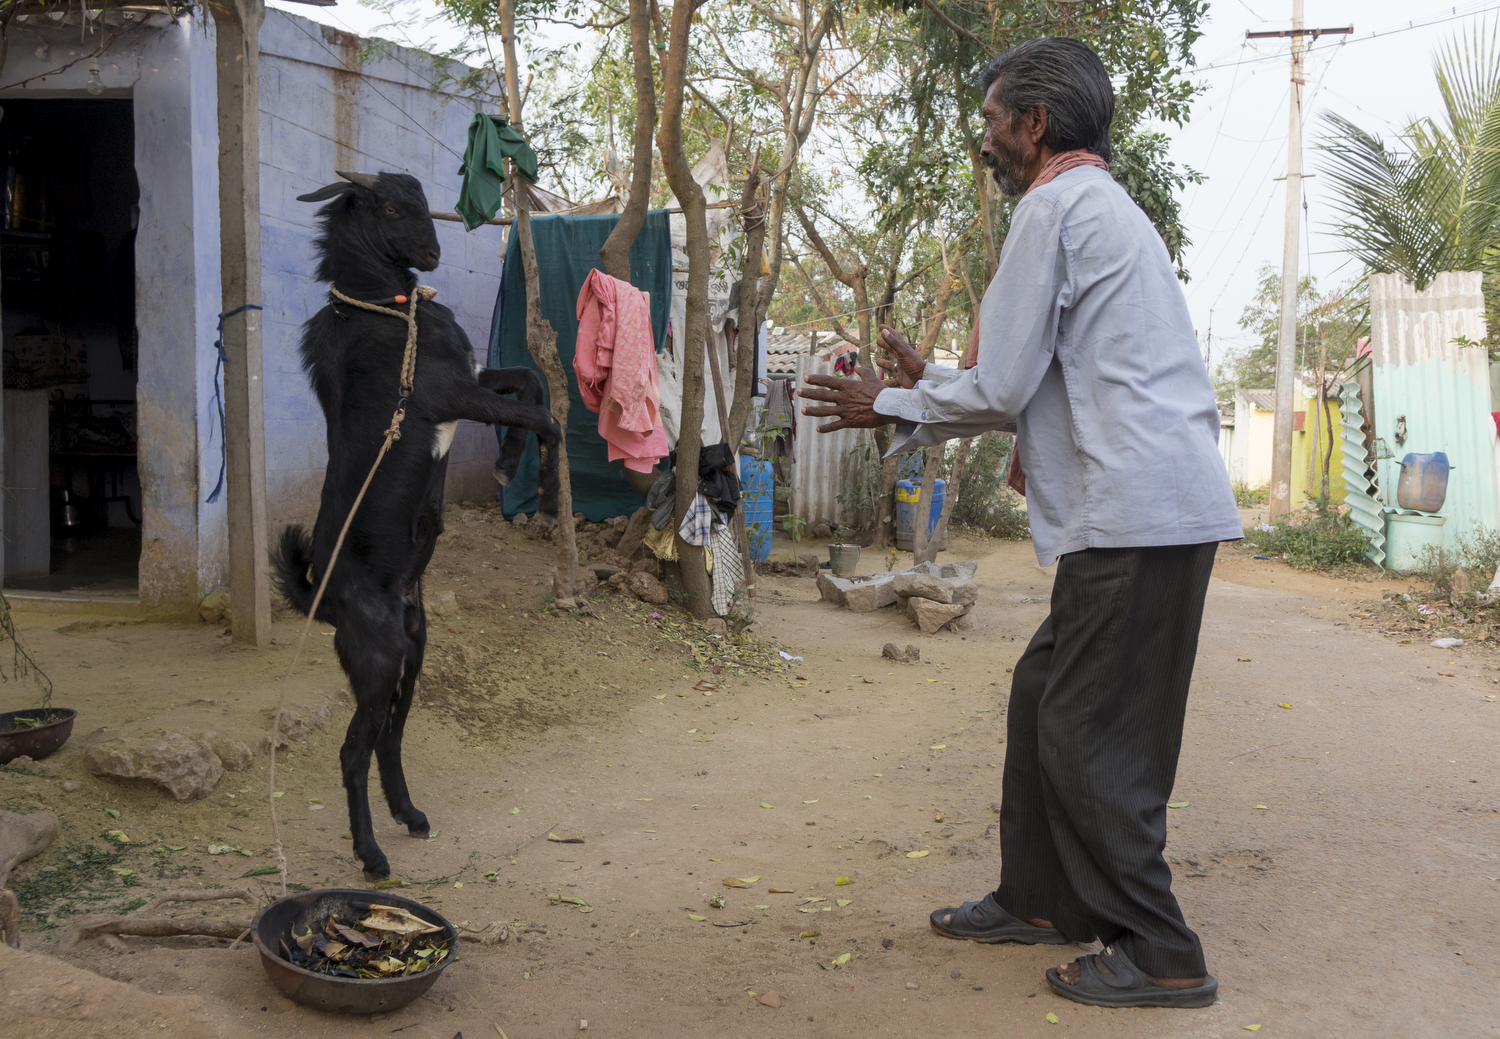 Charles Finny. T - A man from Kalaignar Nagar plays with his pet goat in the early hours on a Saturday morning. While they were playing, the goat became defensive and tried to protect itself by jumping in the air at the man.